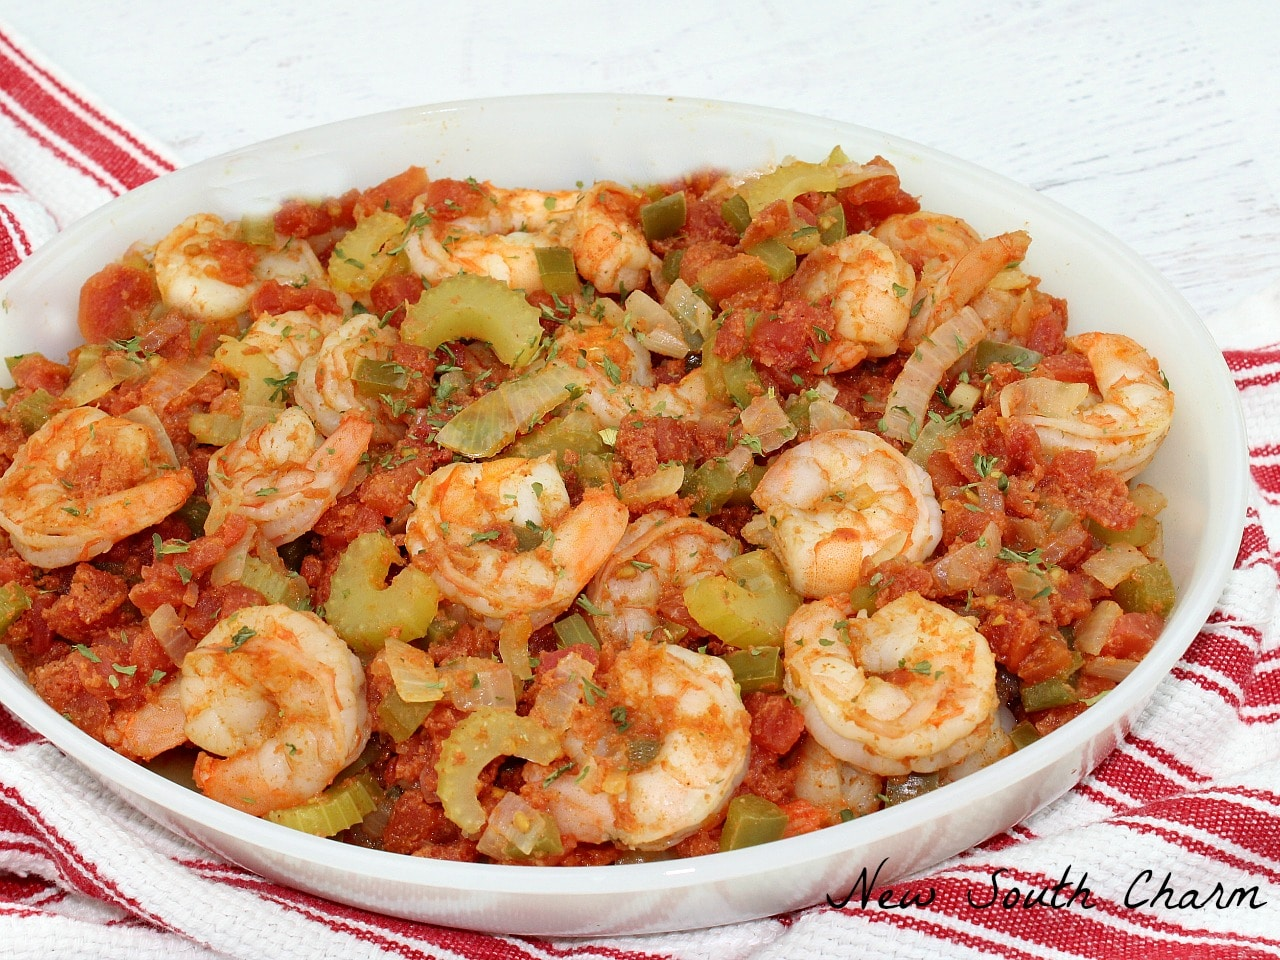 Shrimp Creole is a great dinner idea for any night of the week. This recipe can also be easily adapted for feeding a crowd.